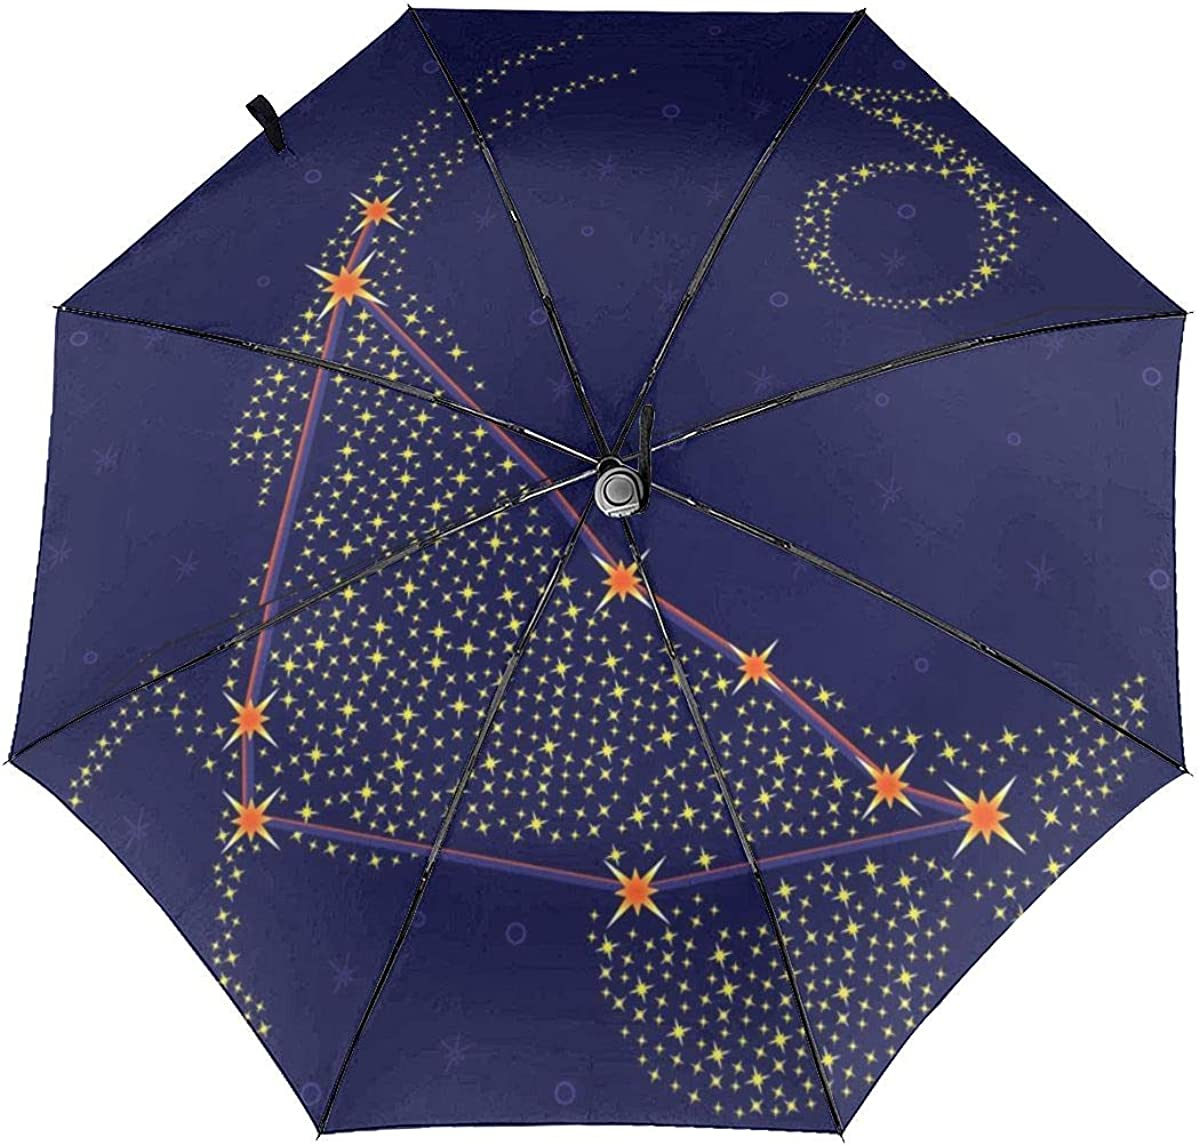 Zodiac Sign Capricorn Over Starry Sky Compact Travel Umbrella Windproof Reinforced Canopy 8 Ribs Umbrella Auto Open And Close Button Customized